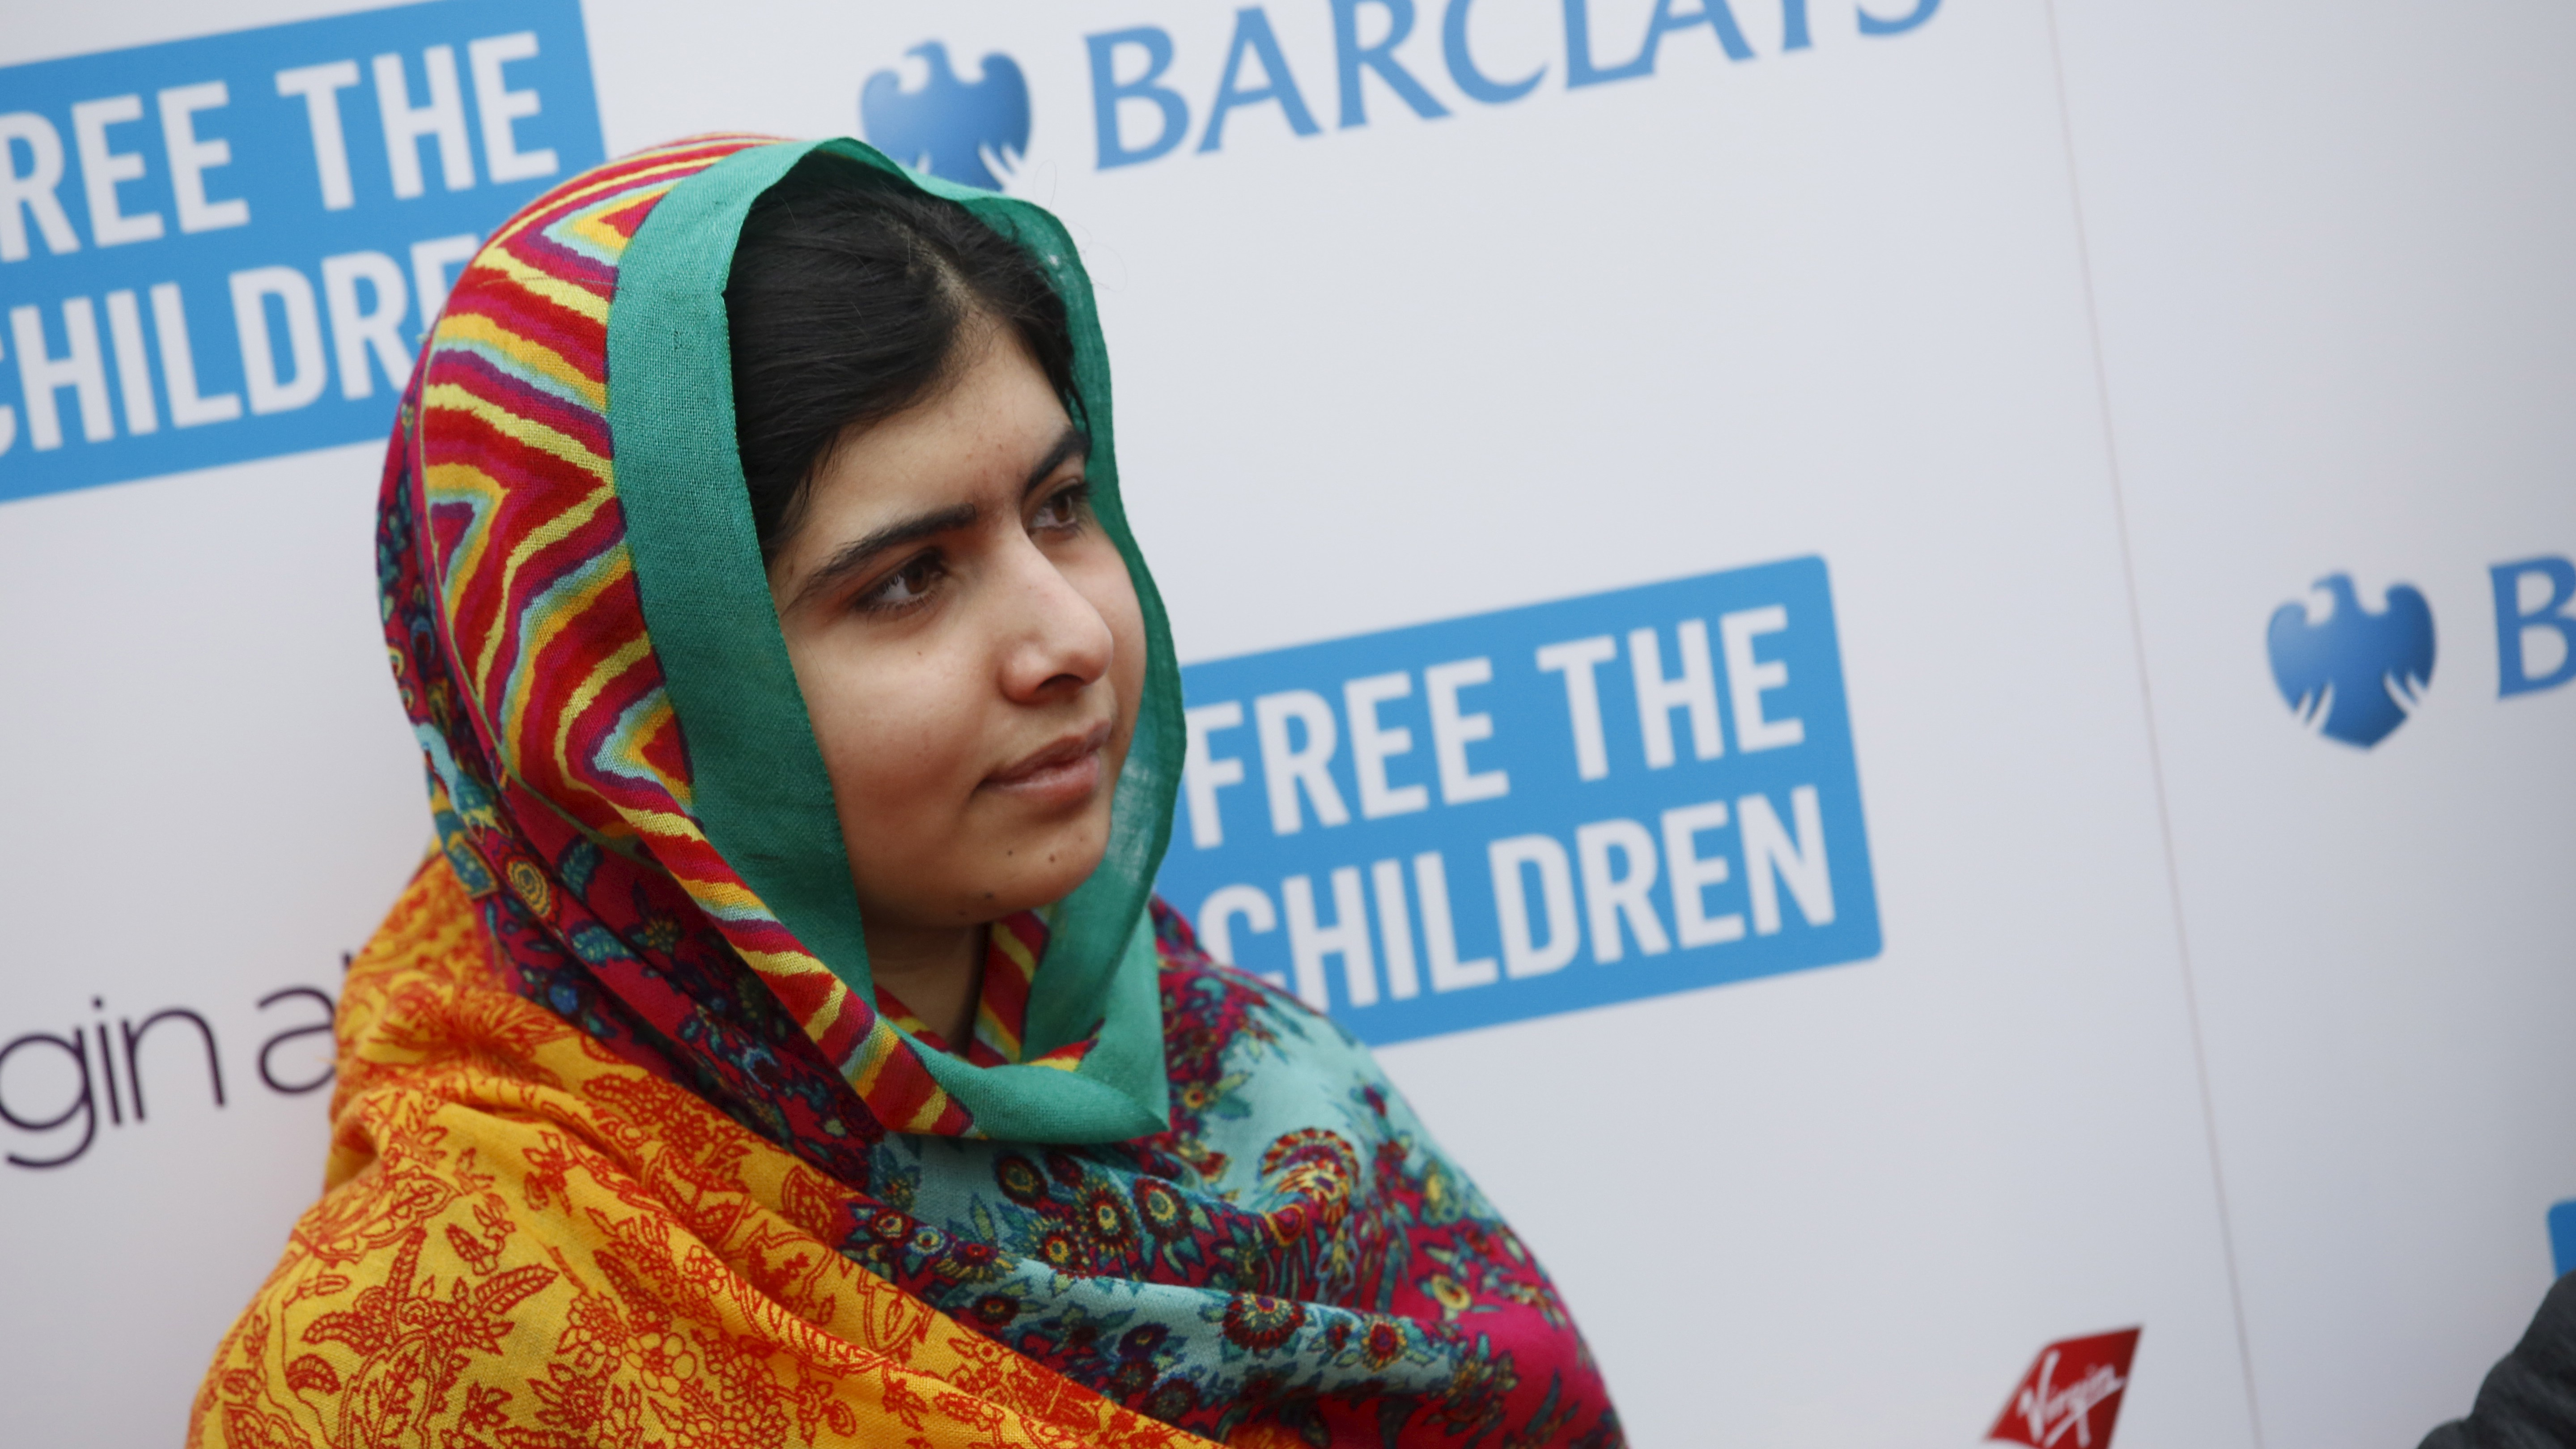 Malala Yousafzai arrives for the We Day UK event at Wembley Arena in London March 7, 2014.  The inaugural We Day UK event is run by the charity Free the Children to inspire young people to take action on global issues in a voluntary capacity. (BRITAIN)  BEST QUALITY AVAILABLE  - RTX1M4NH